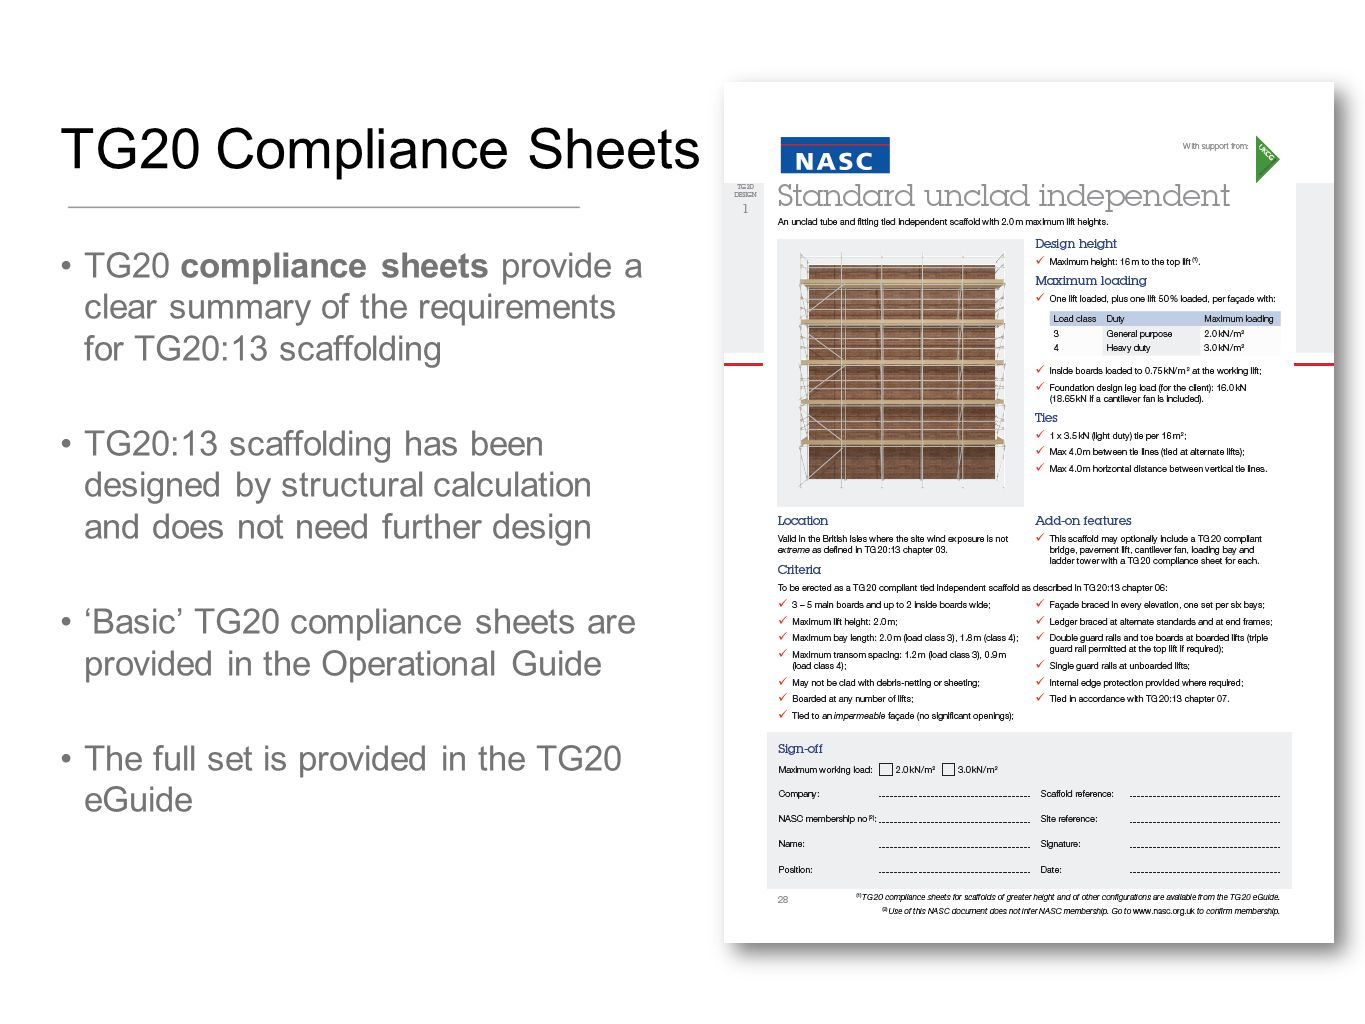 TG20 Compliance Sheets TG20 compliance sheets provide a clear summary of the requirements for TG20:13 scaffolding.